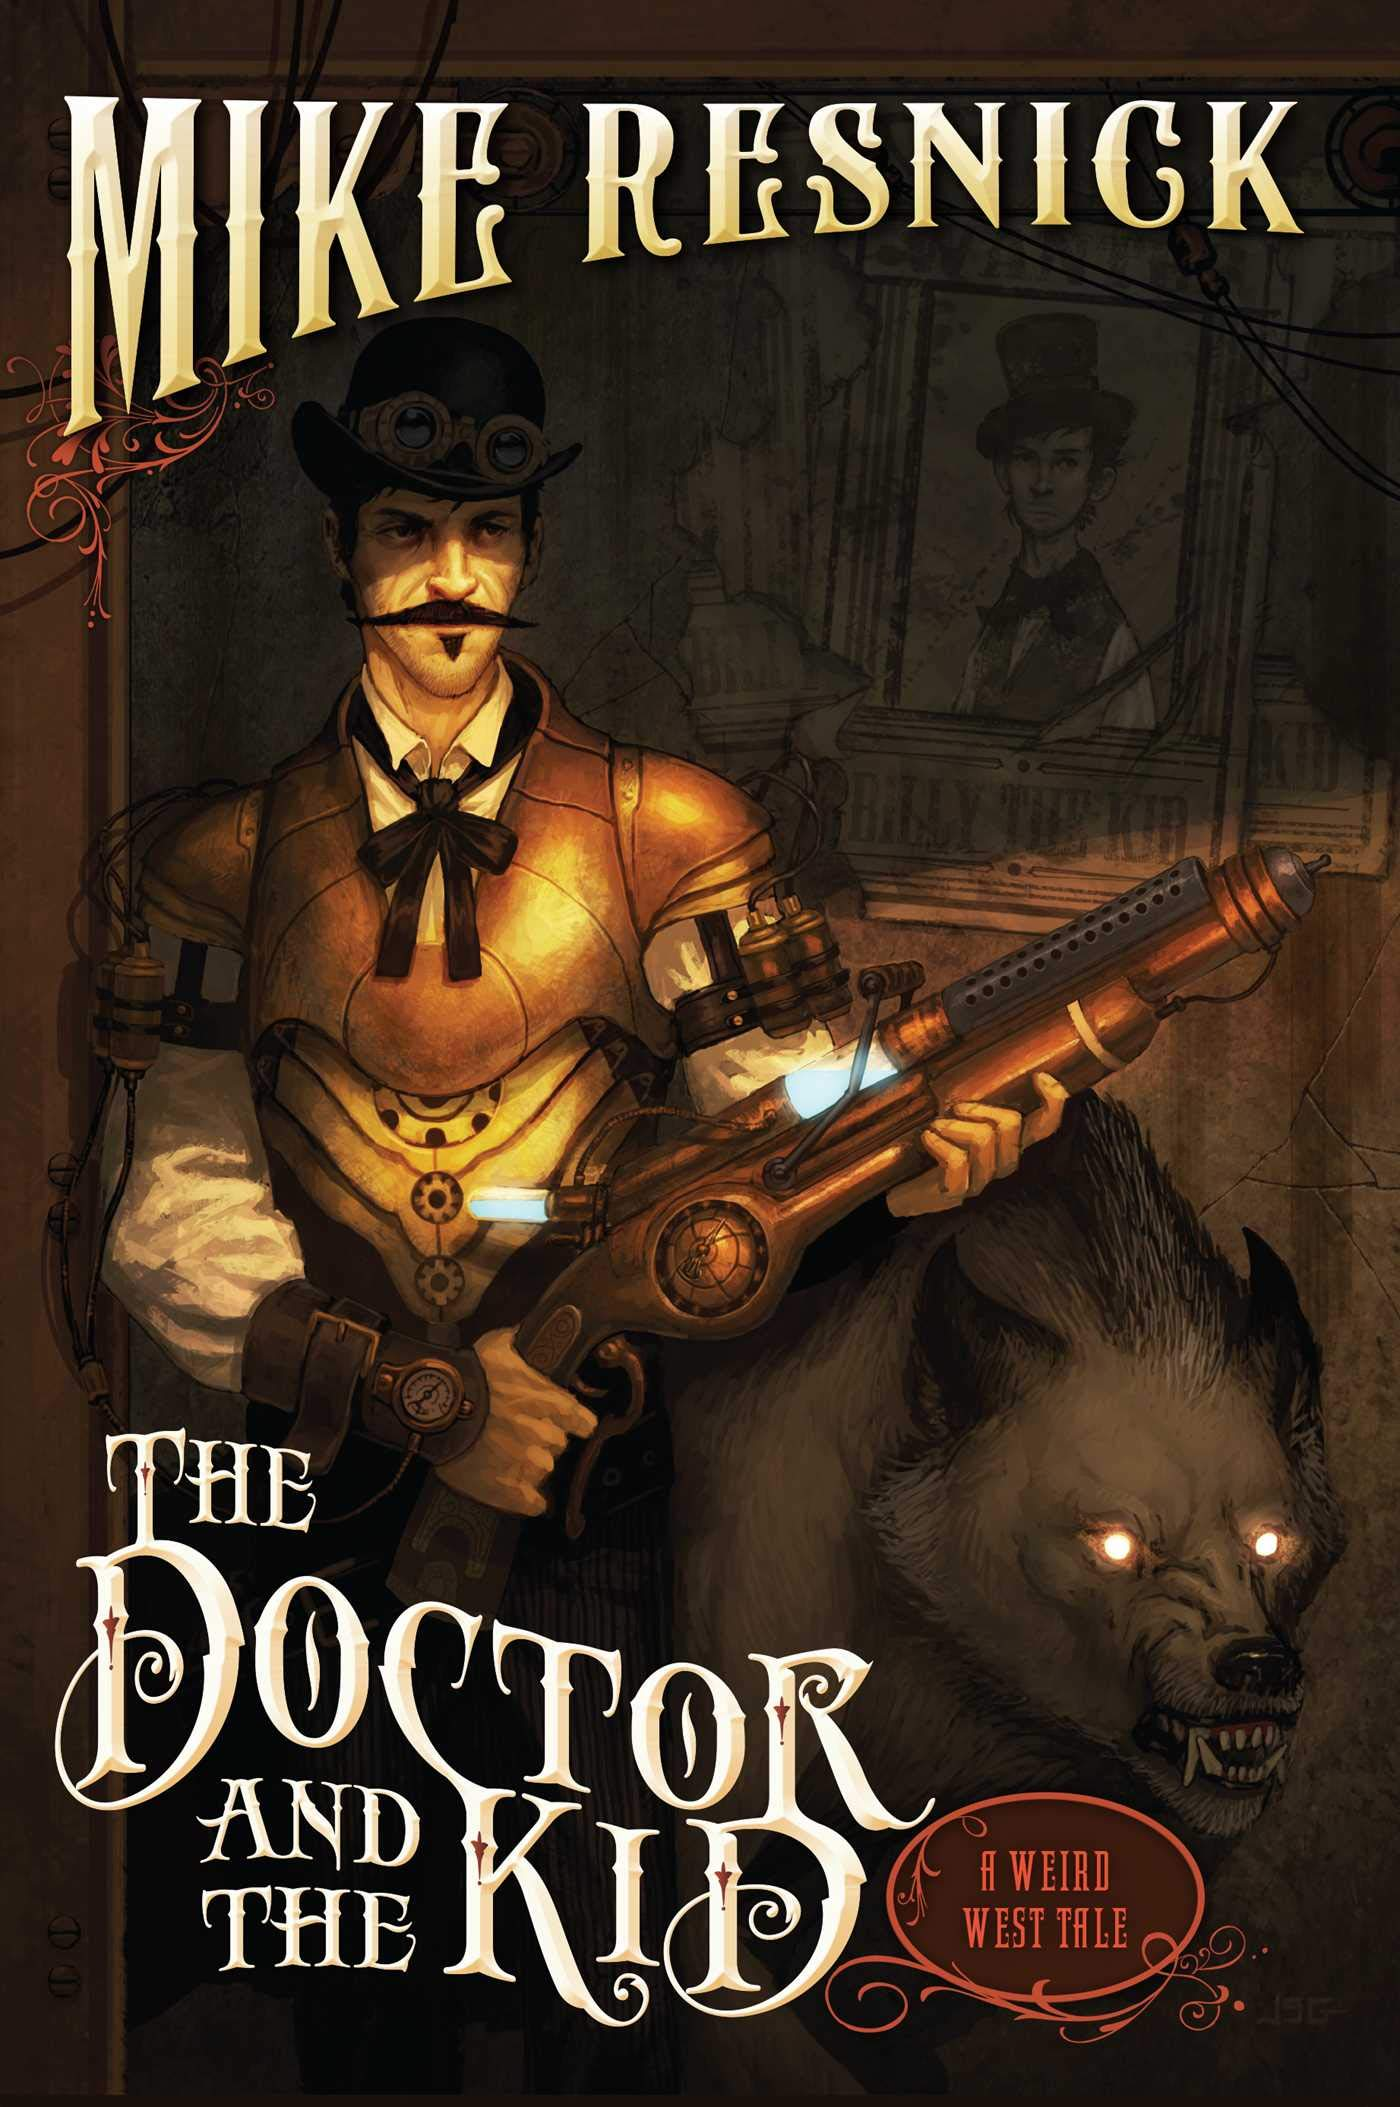 The Doctor and the Kid (2) (A Weird West Tale): Resnick, Mike ...